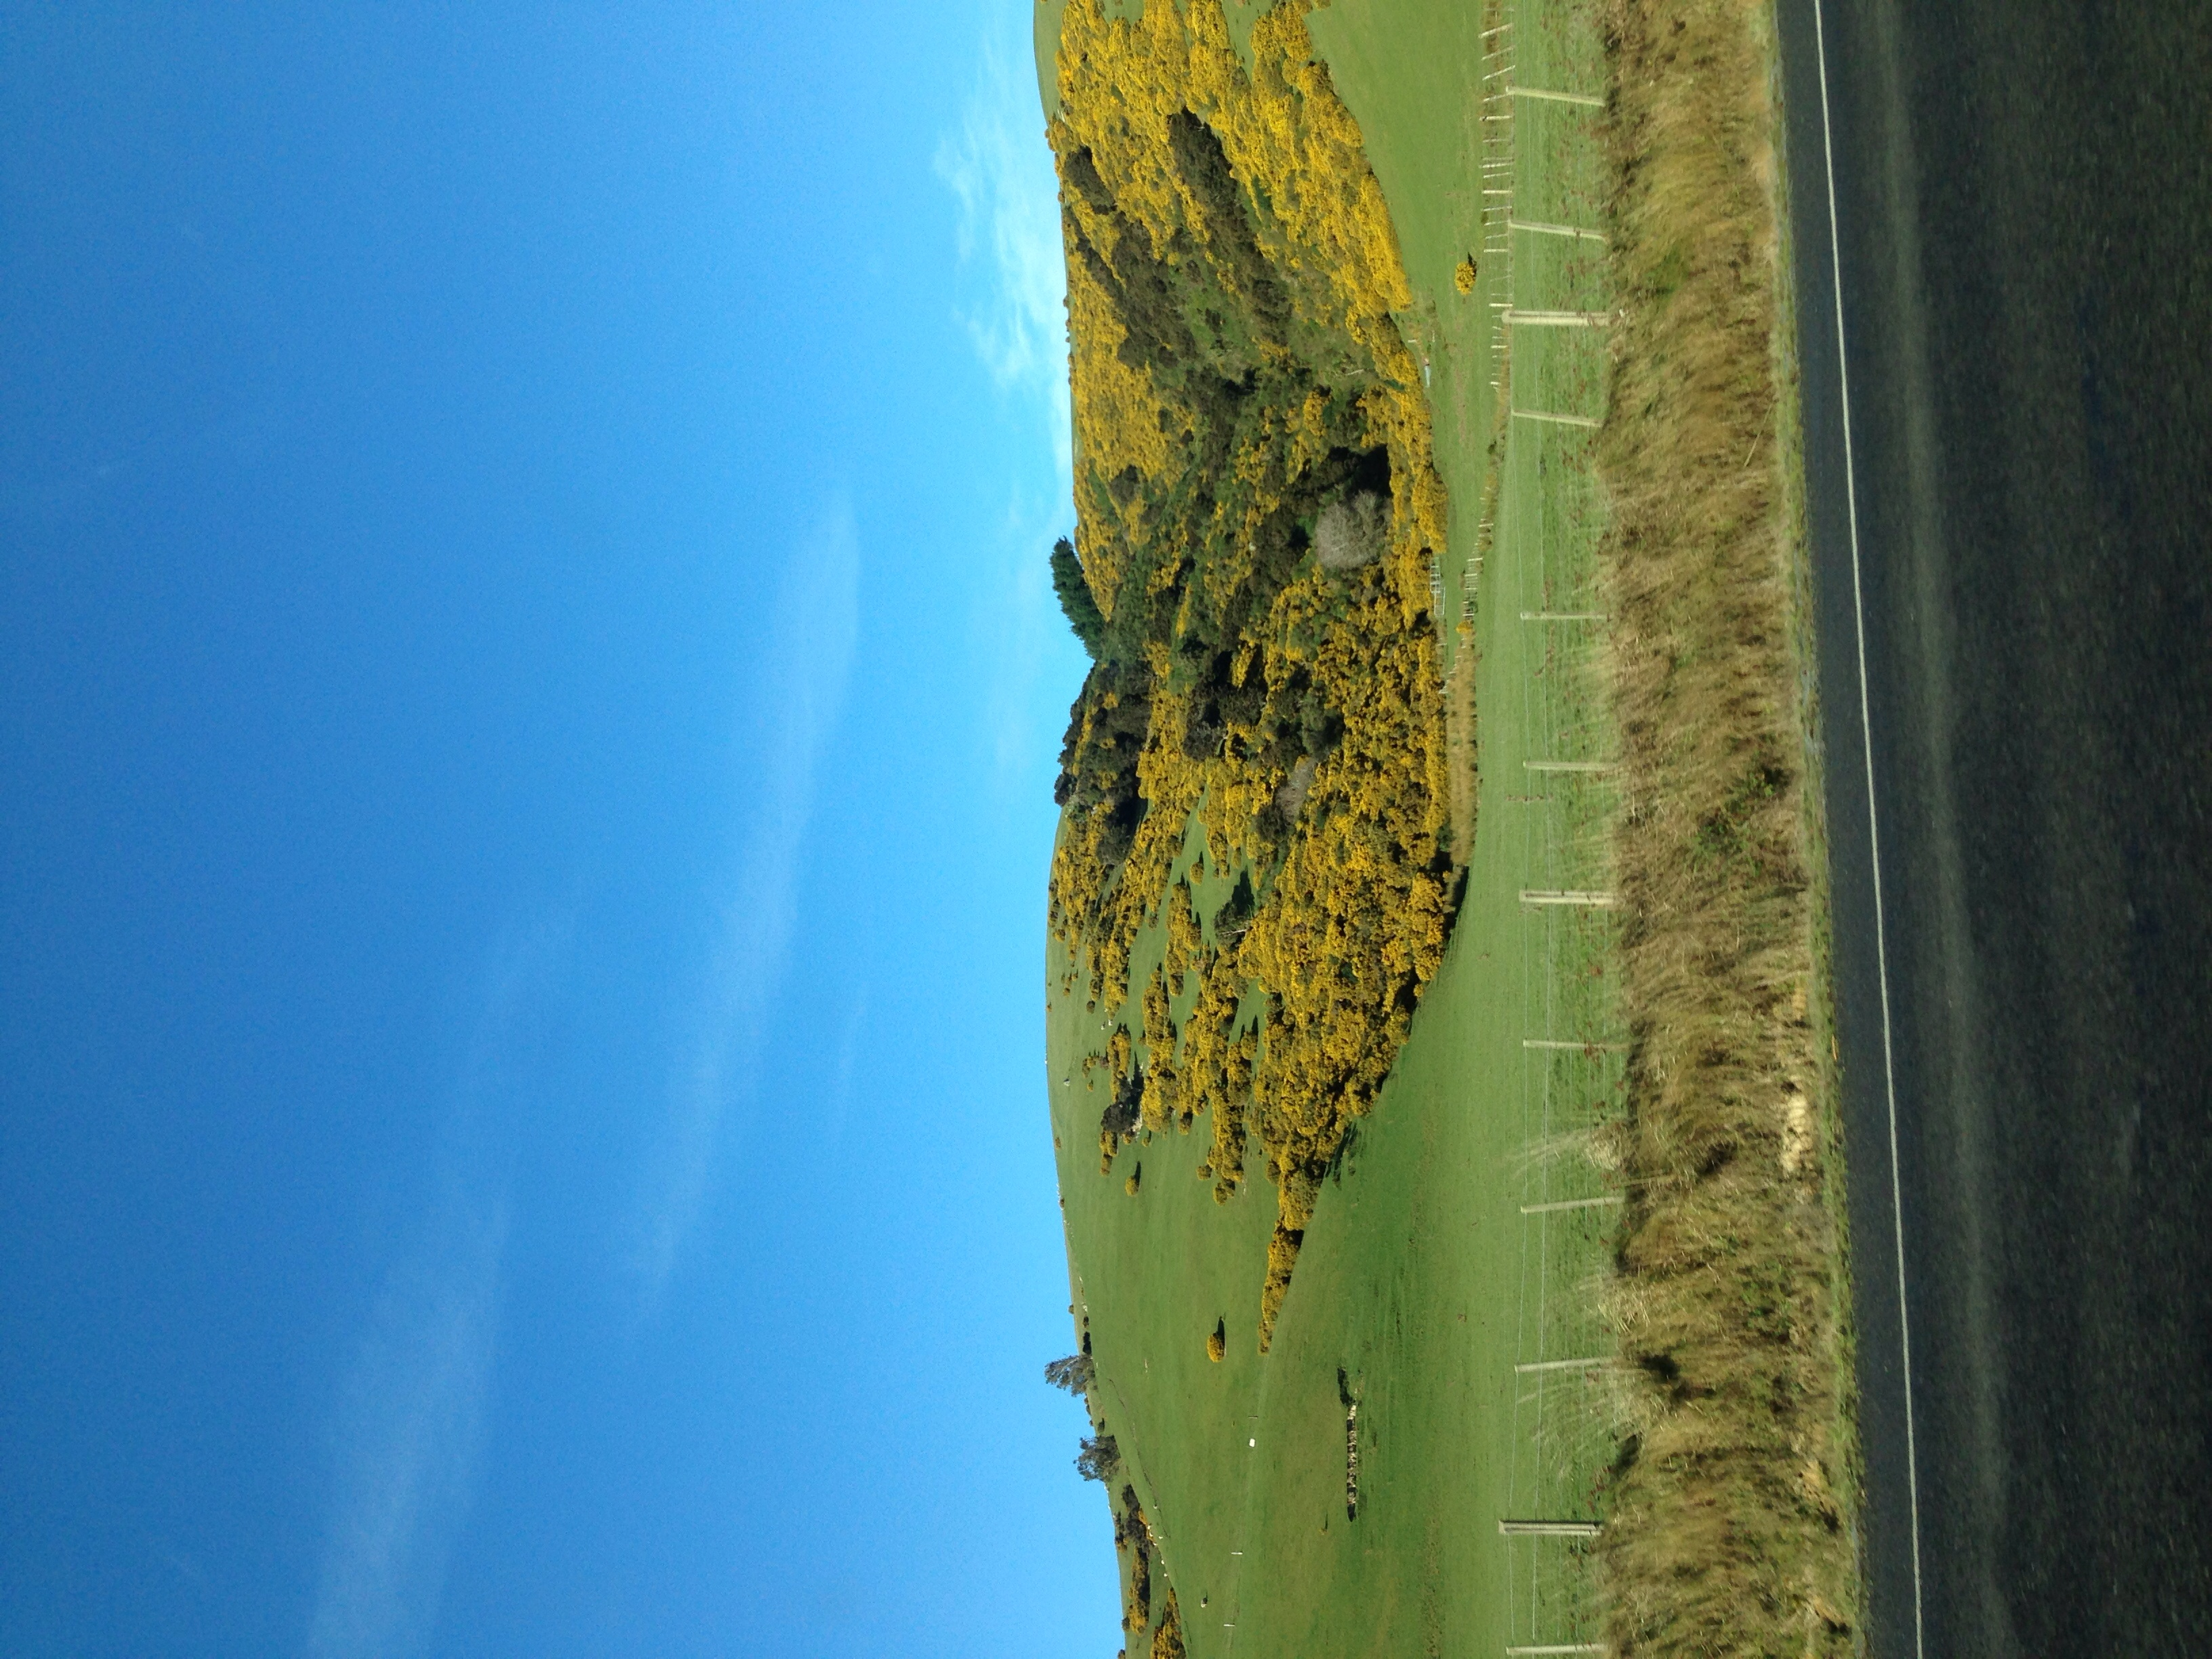 Green rolling hills with sheep and gorse, feels like Ireland.